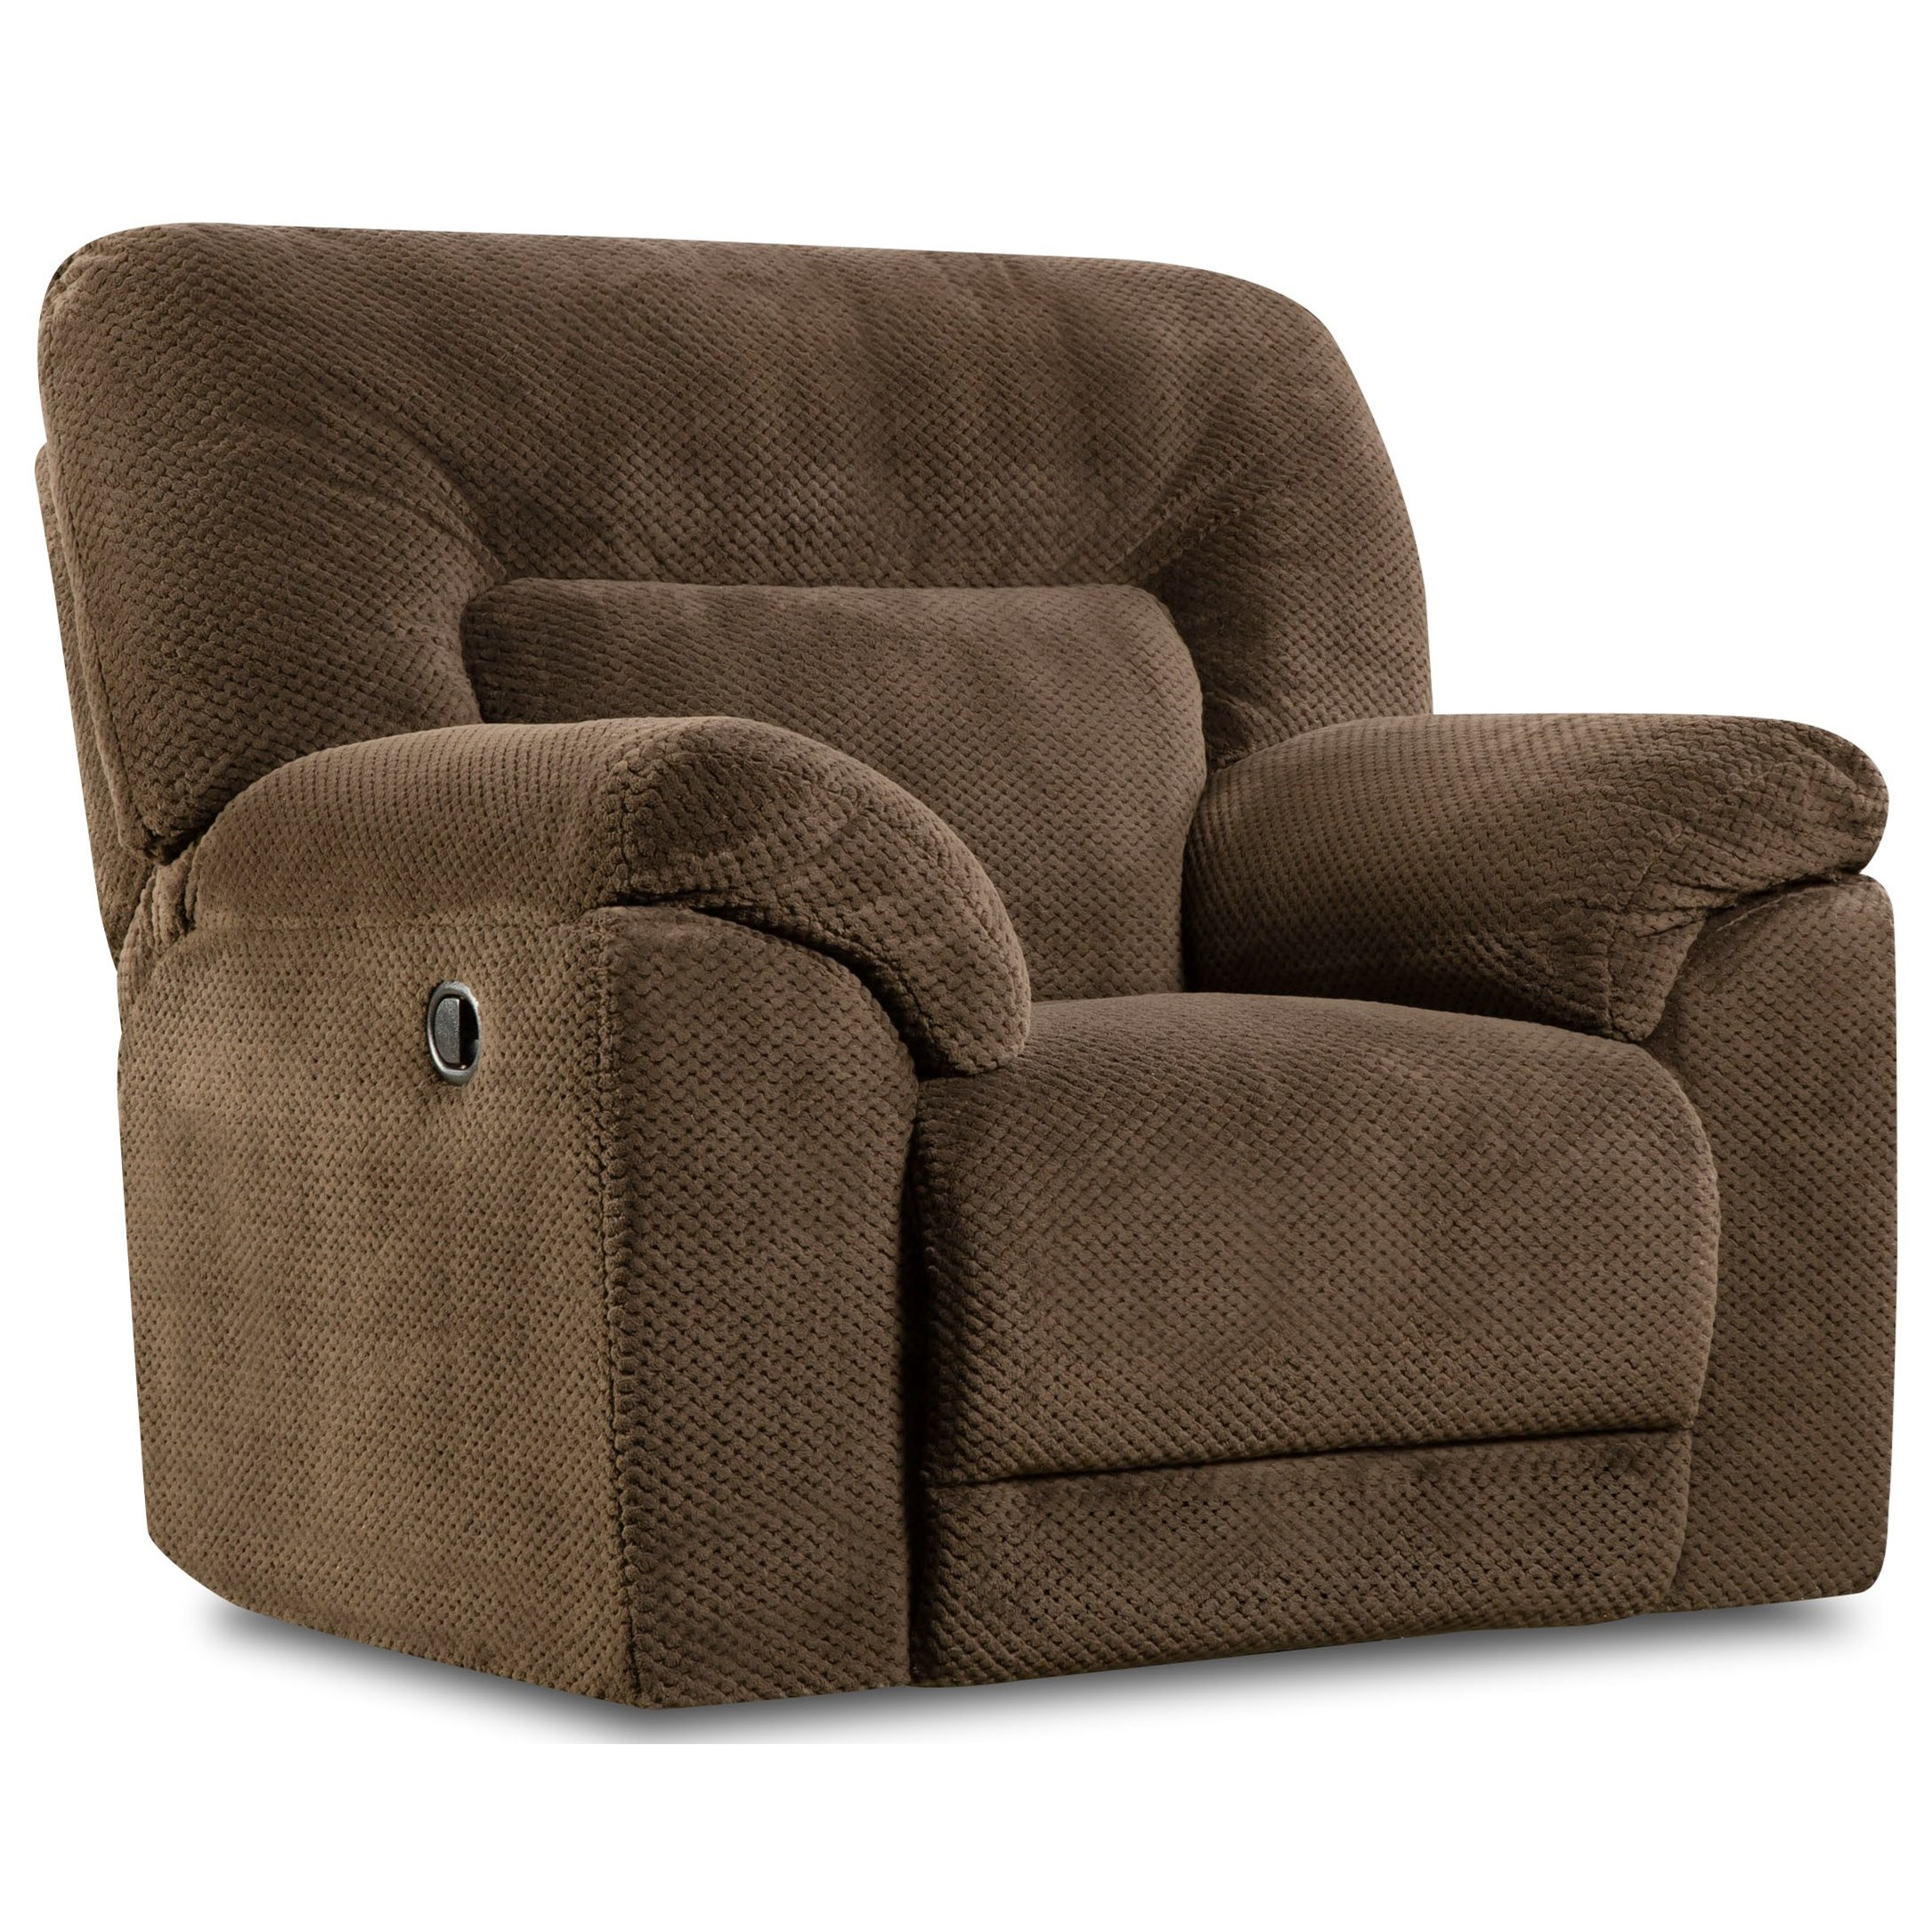 50570 Cuddler Recliner  by Simmons Upholstery at Dunk & Bright Furniture